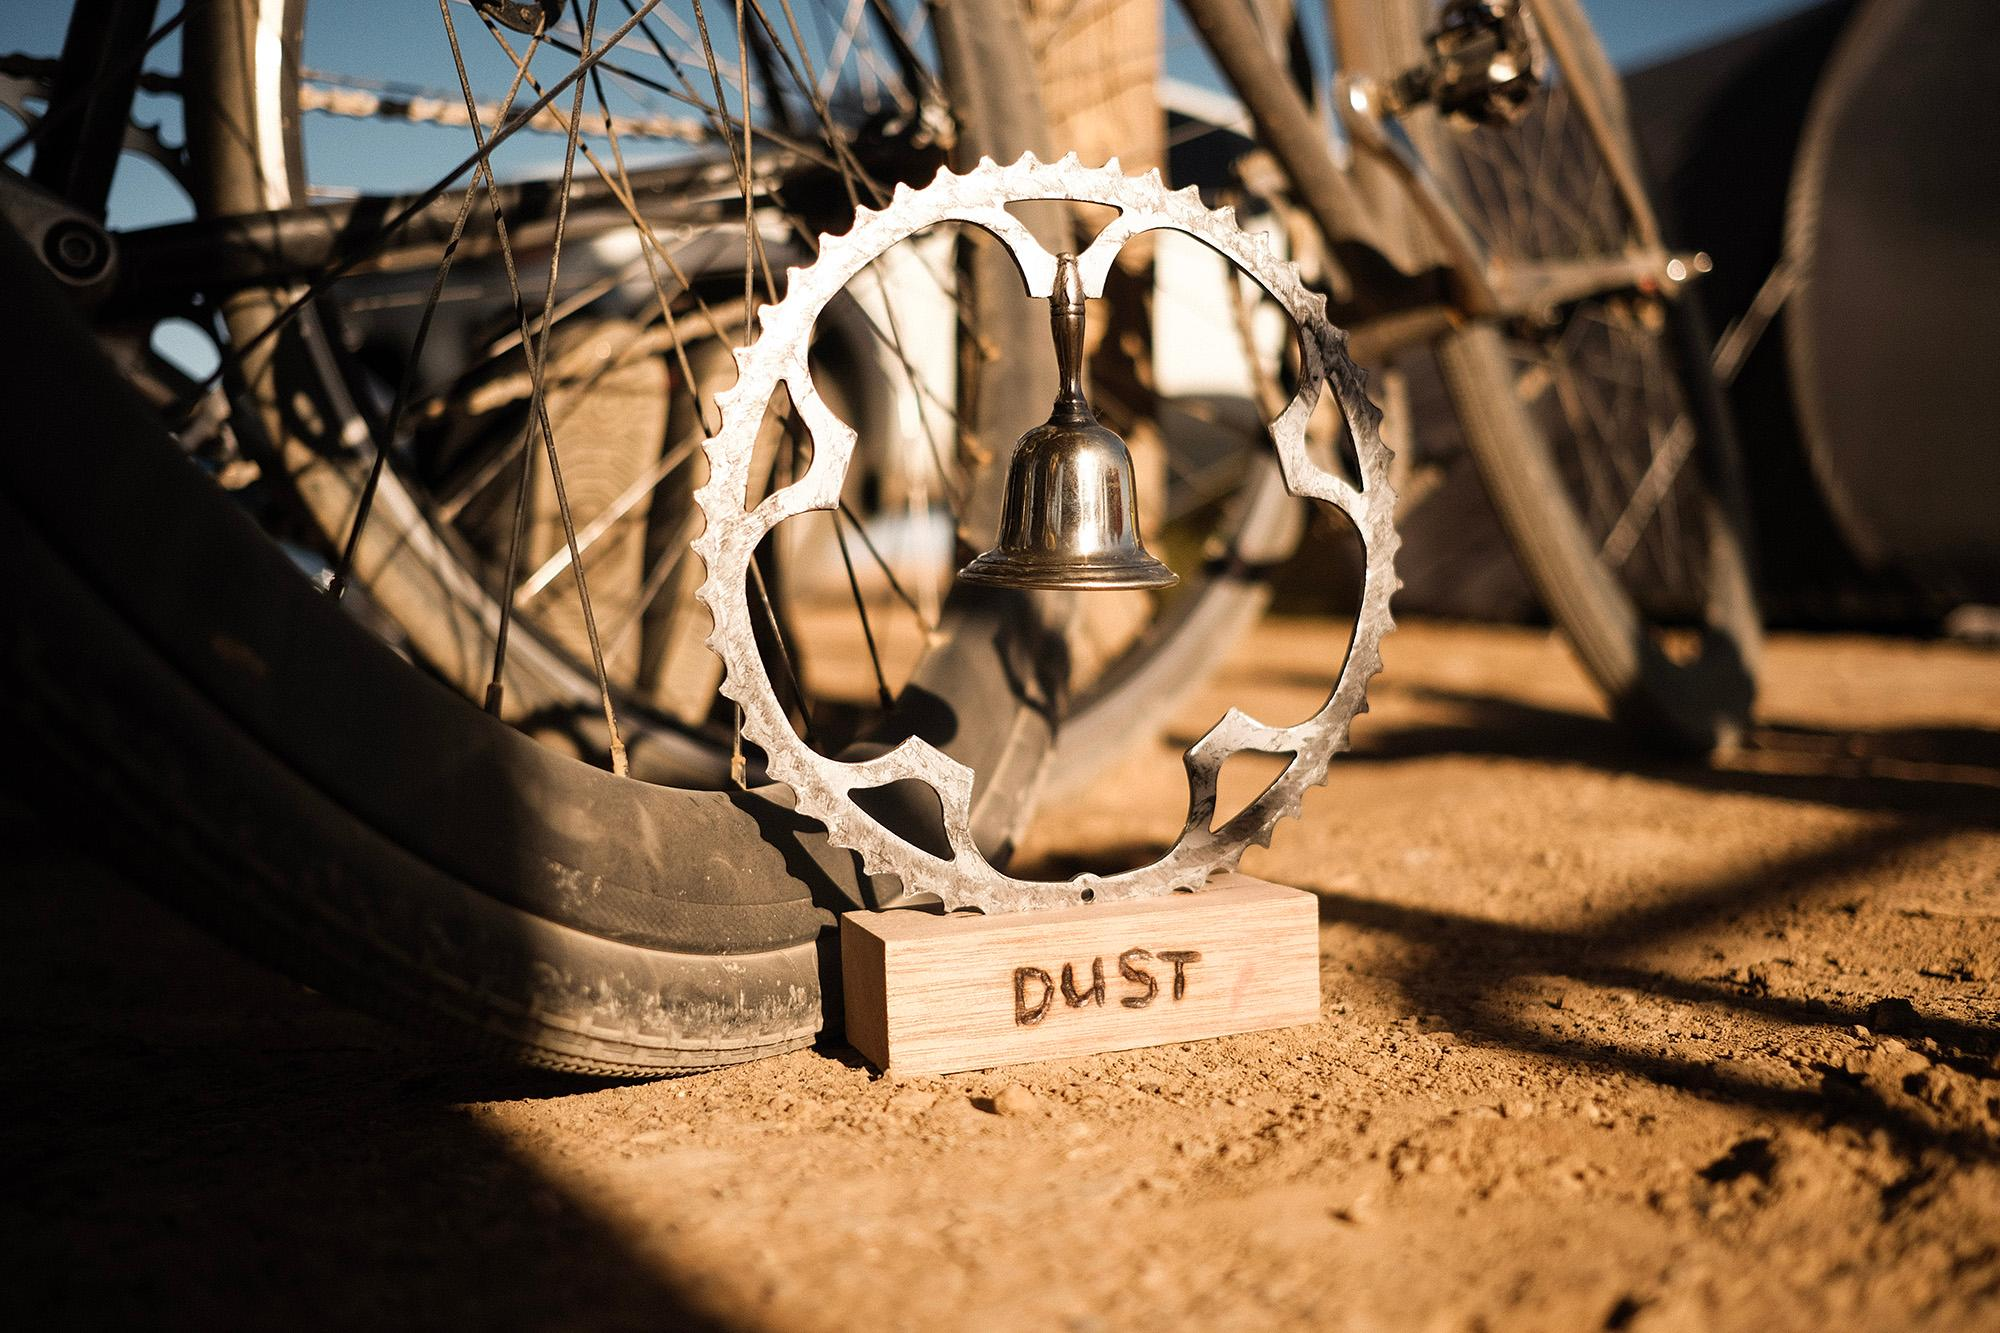 The DUST trophy - definitely not the main reason why everyone is here ... Verneukpan, 2020.